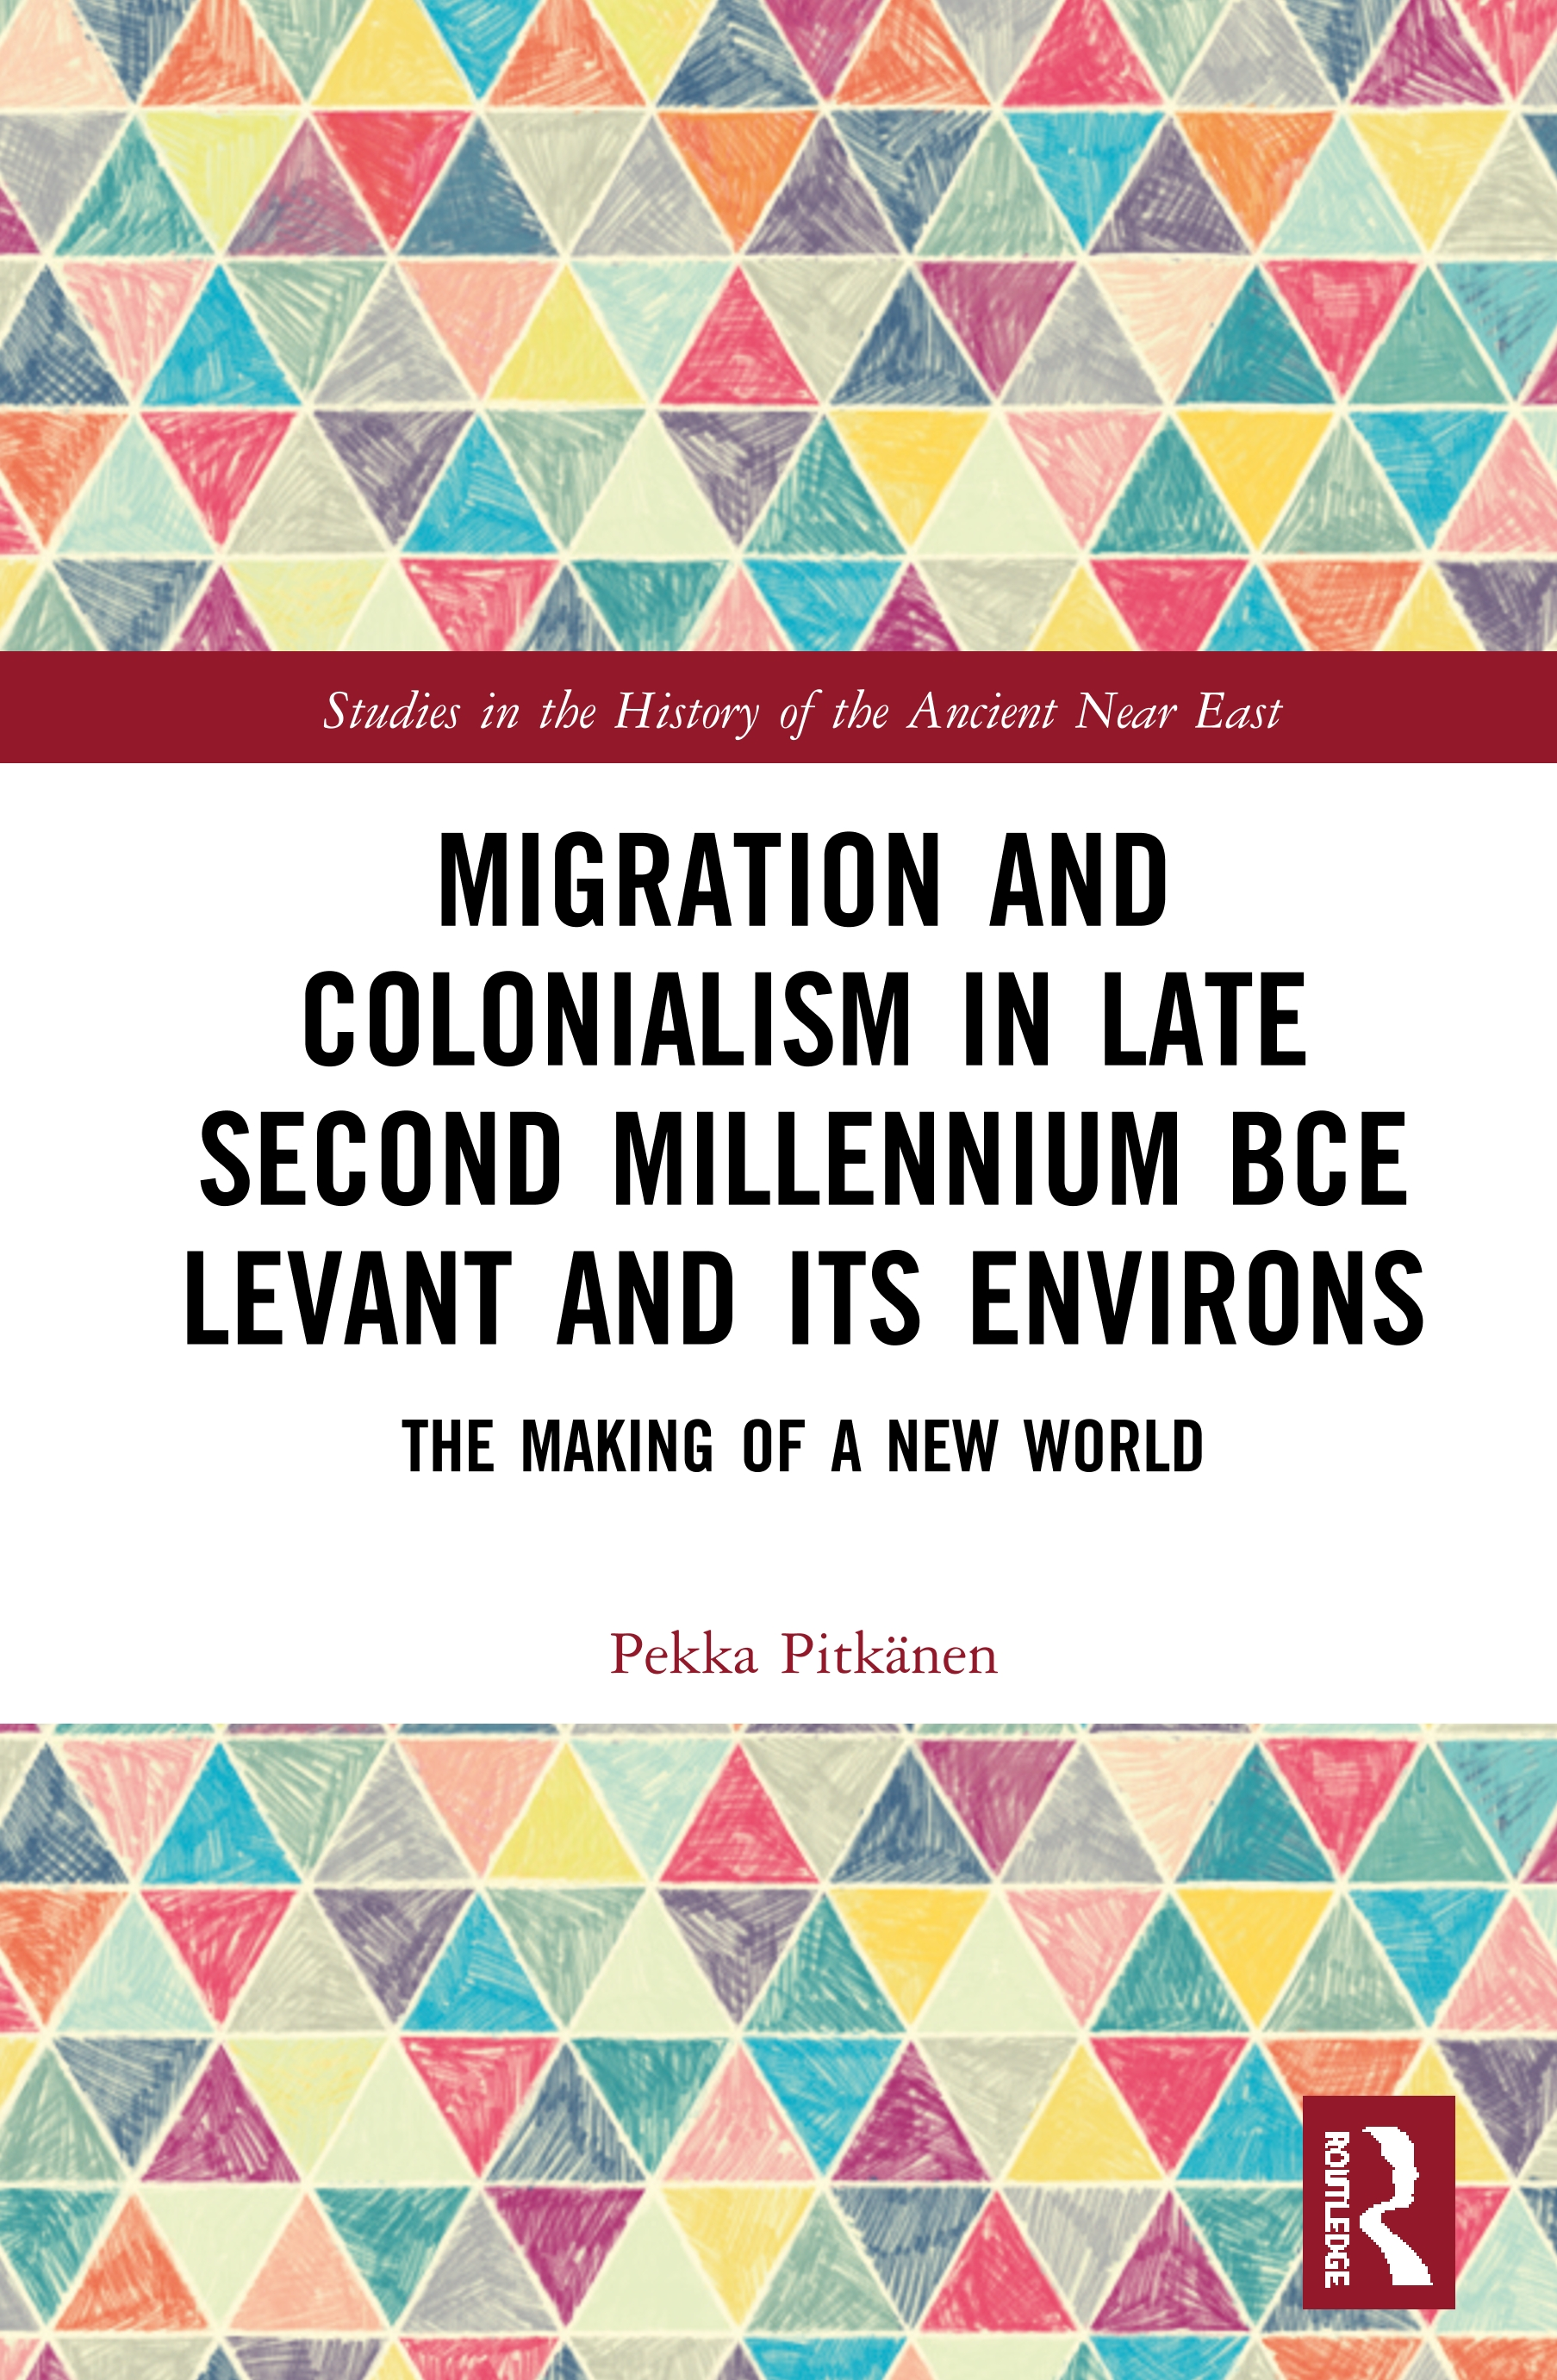 Migration and Colonialism in Late Second Millennium BCE Levant and Its Environs: The Making of a New World book cover